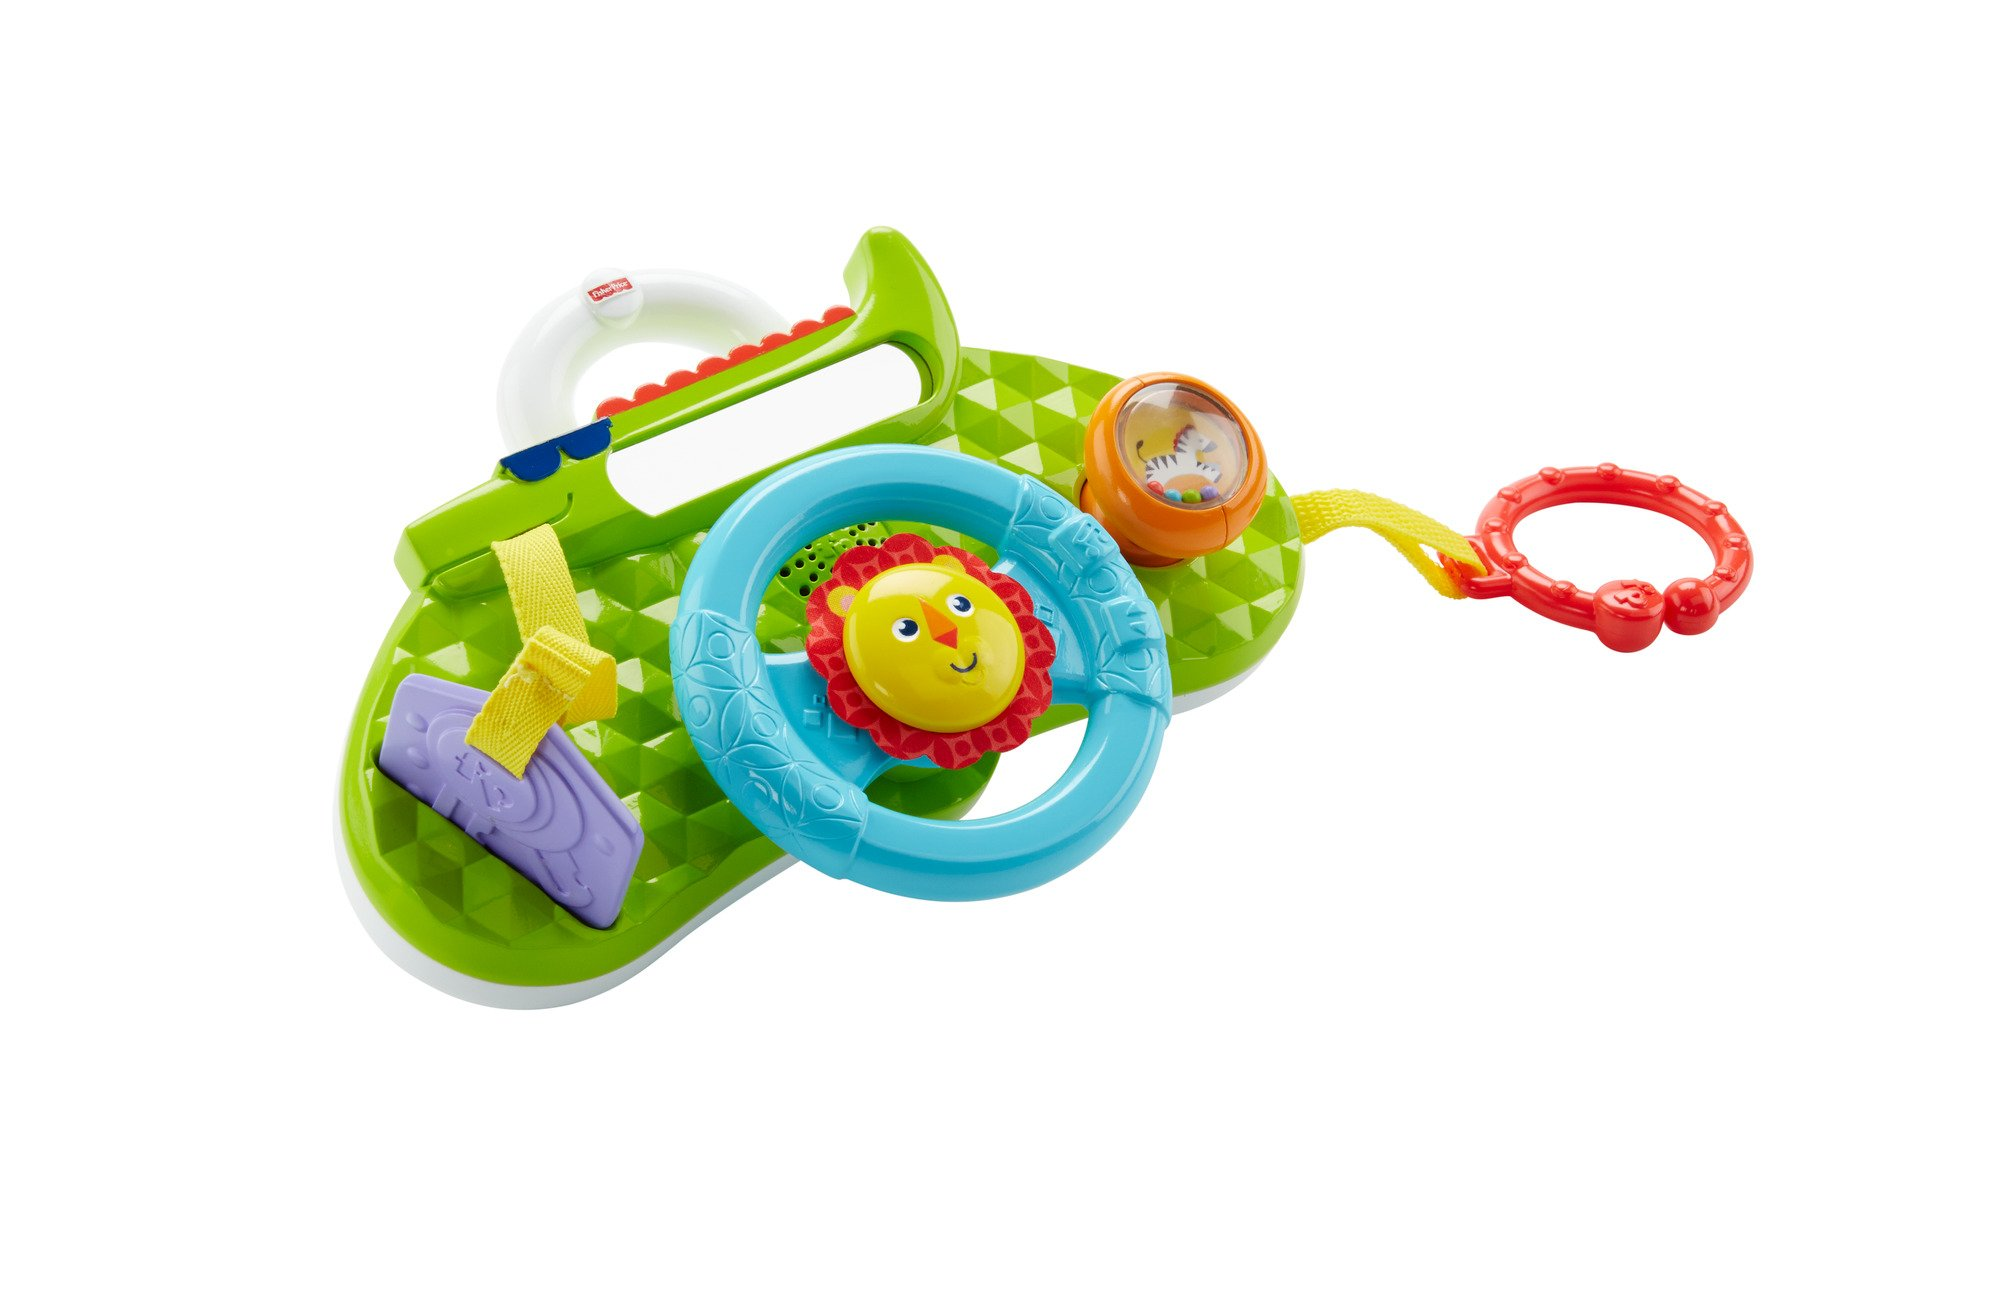 Fisher-Price Rolling and Strolling Dashboard, New-born Activity Toy with Music Sounds Fisher-Price  Attaches to stroller for playtime on the go  Turn the lion steering wheel to hear short songs  Push the lion's face for silly sound effects (Beep beep!) 2